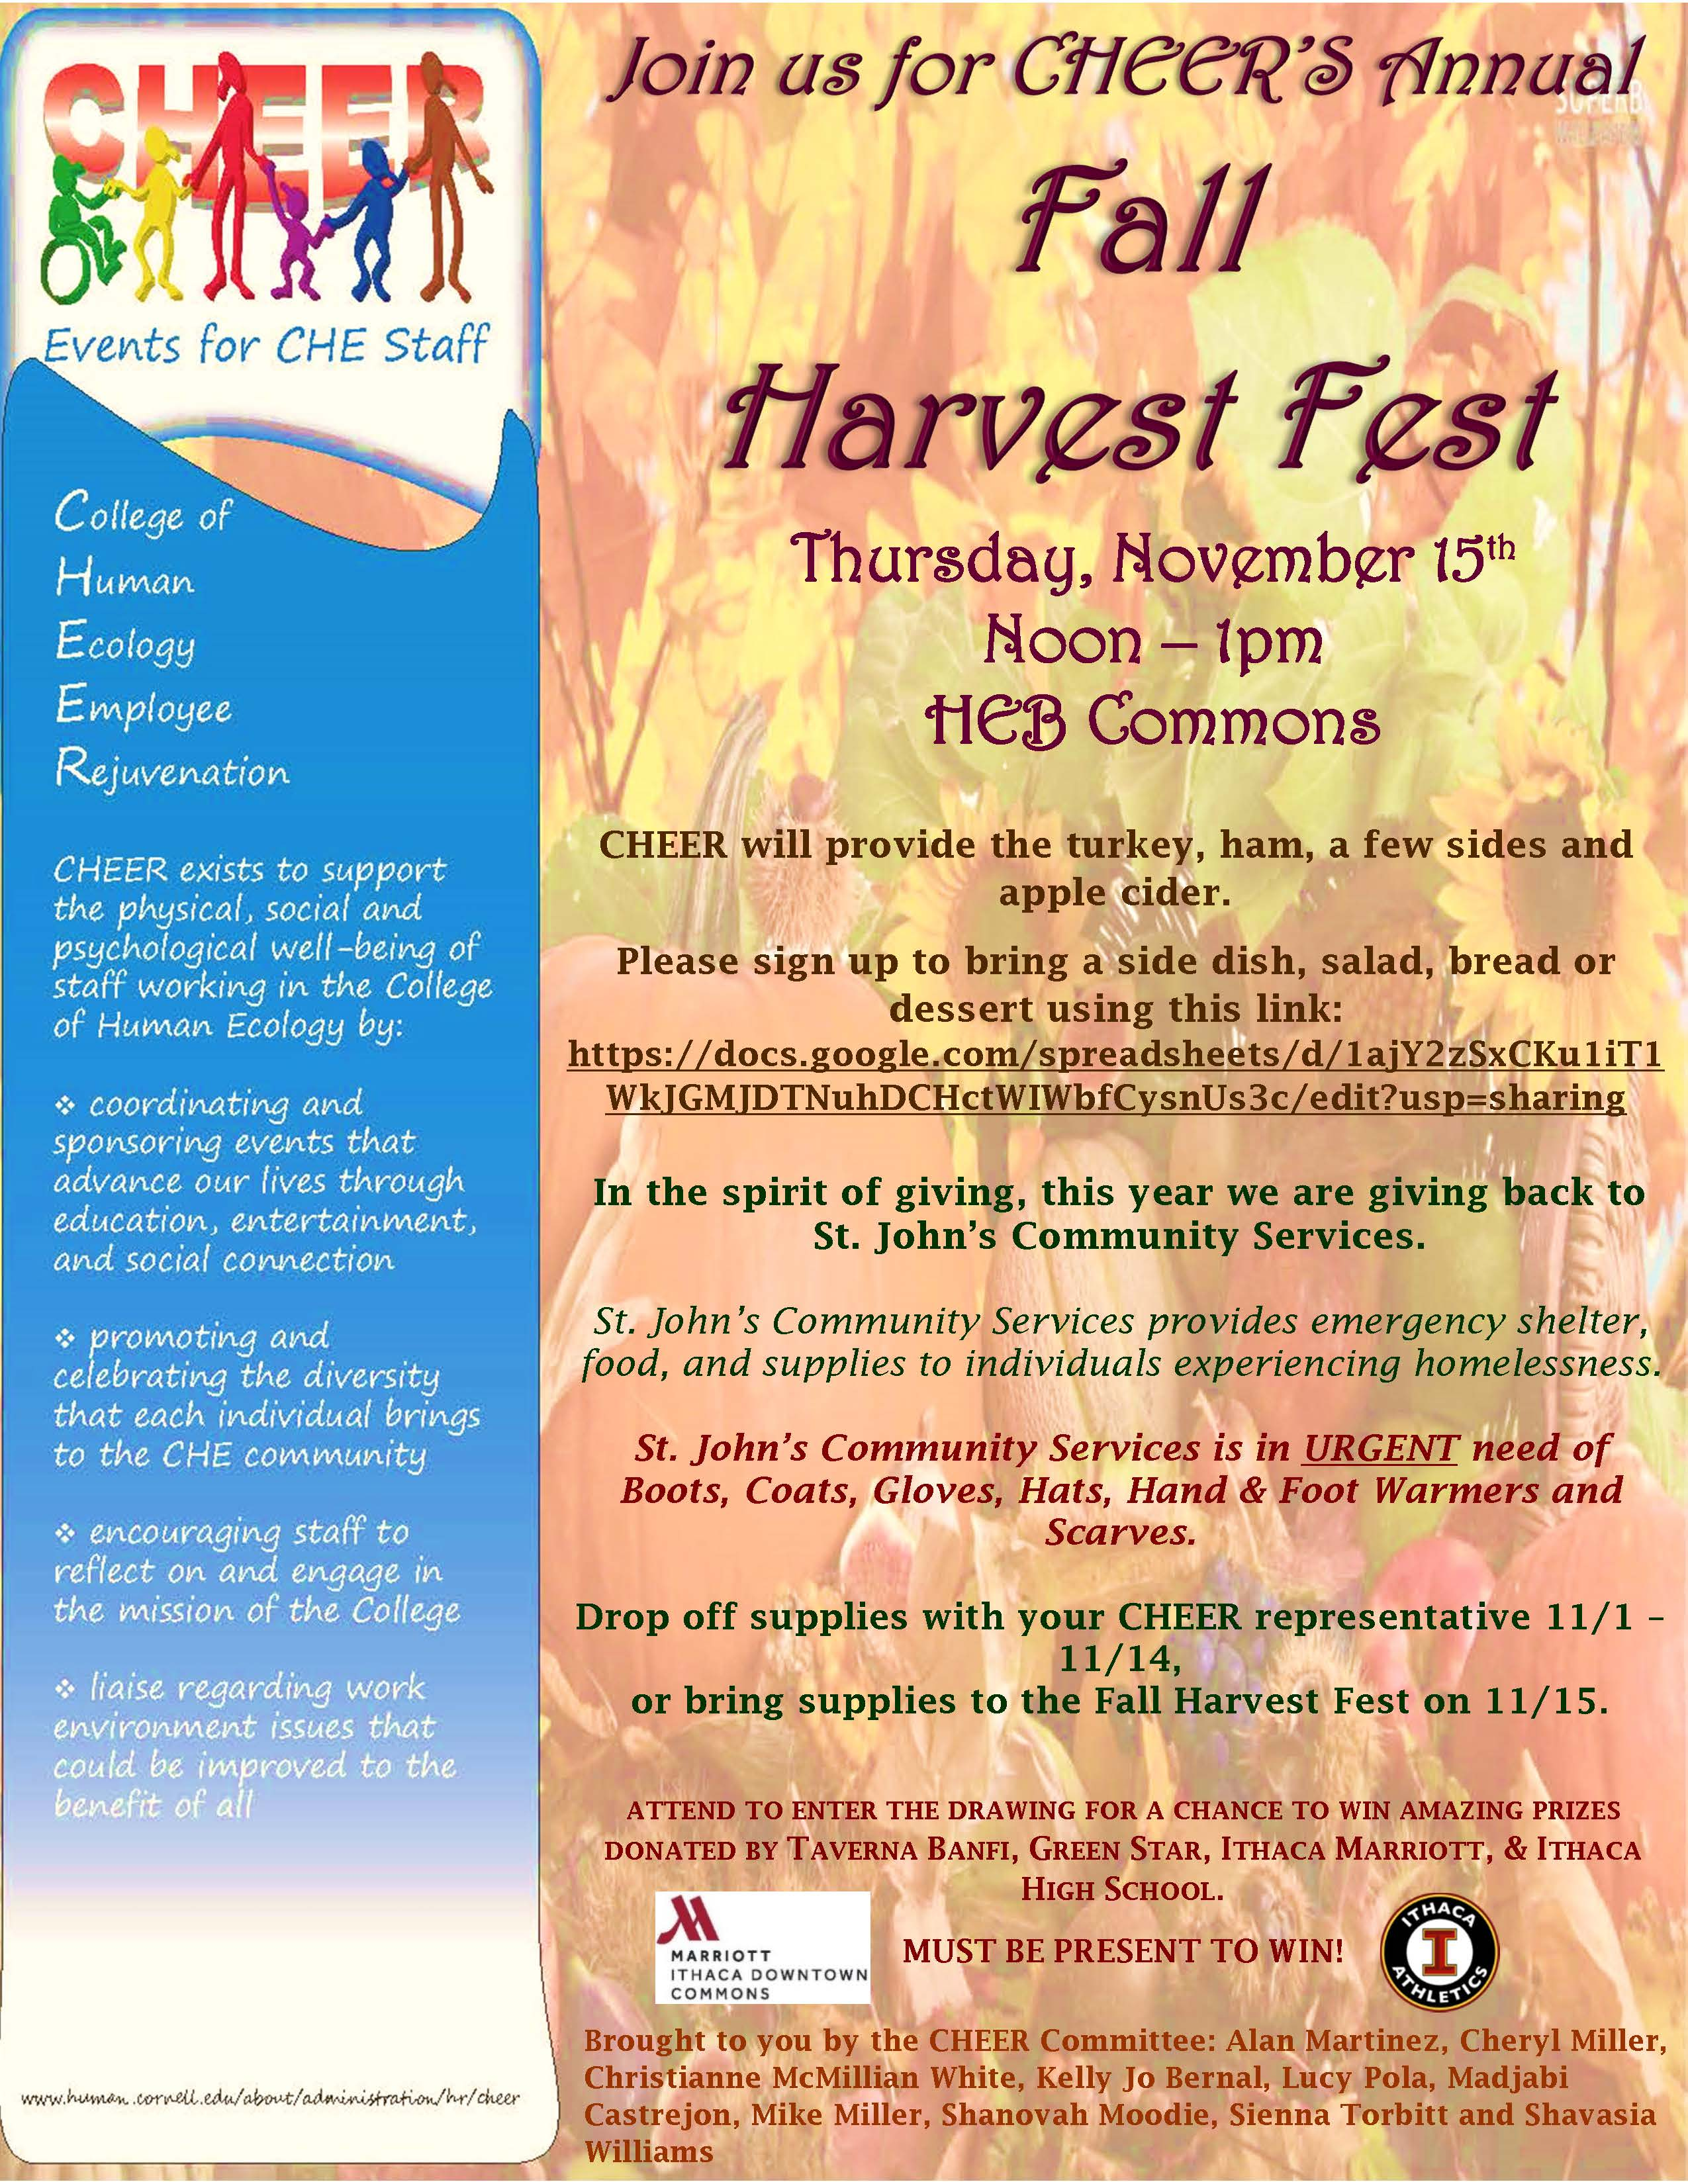 Flyer with fall harvest gathering information for 11/15/18 location MVR Commons 12-1